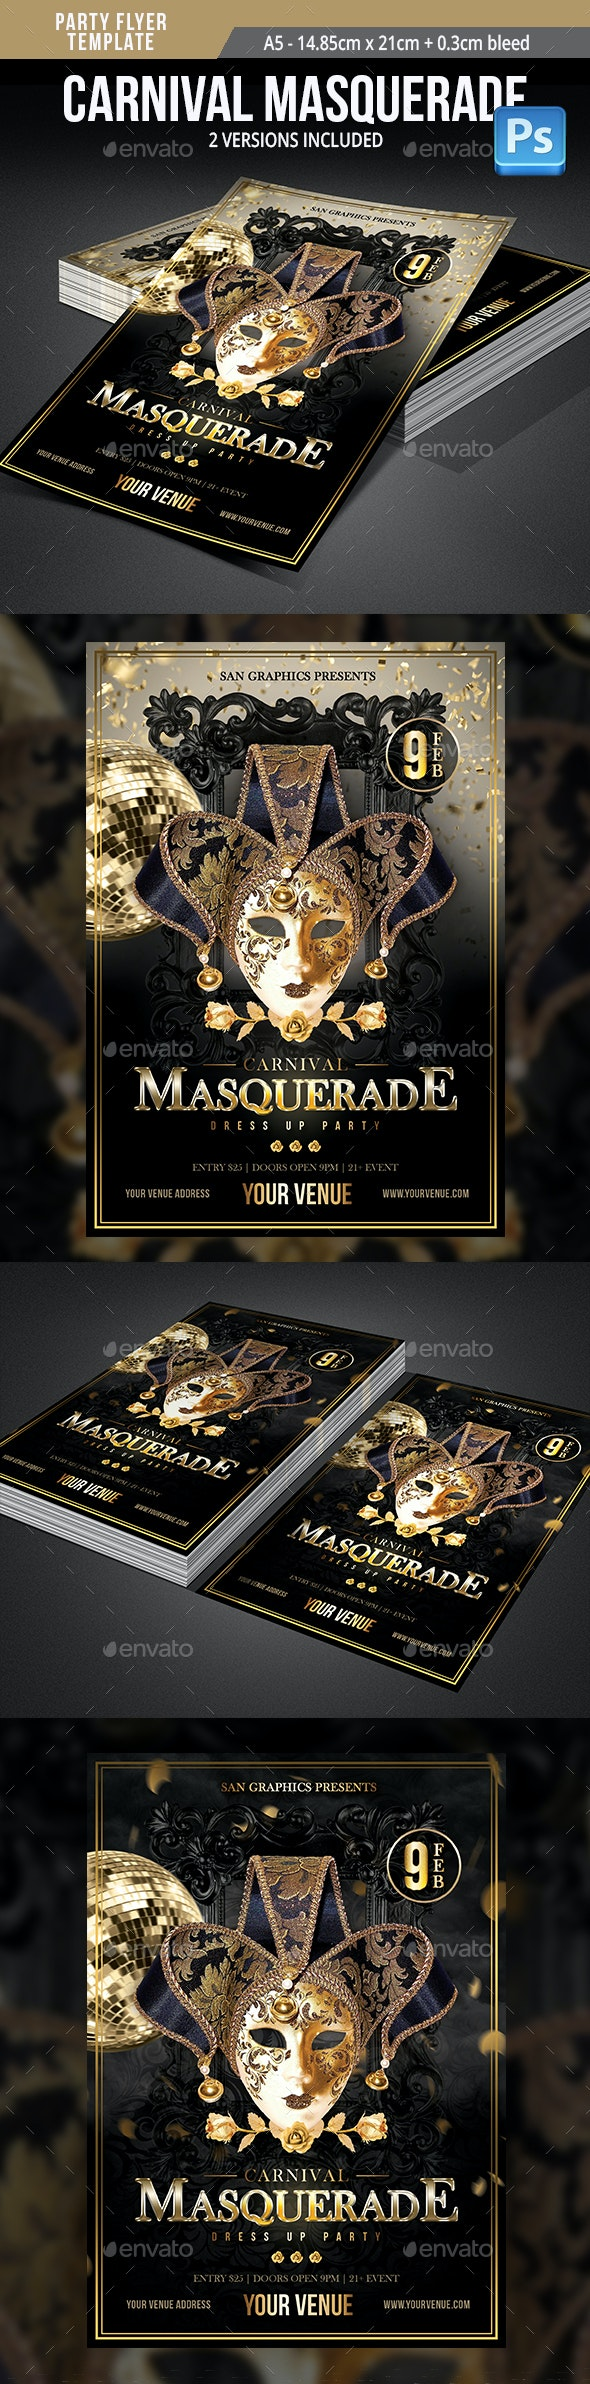 Carnival Masquerade Dress Up Party Flyer Template - Flyers Print Templates